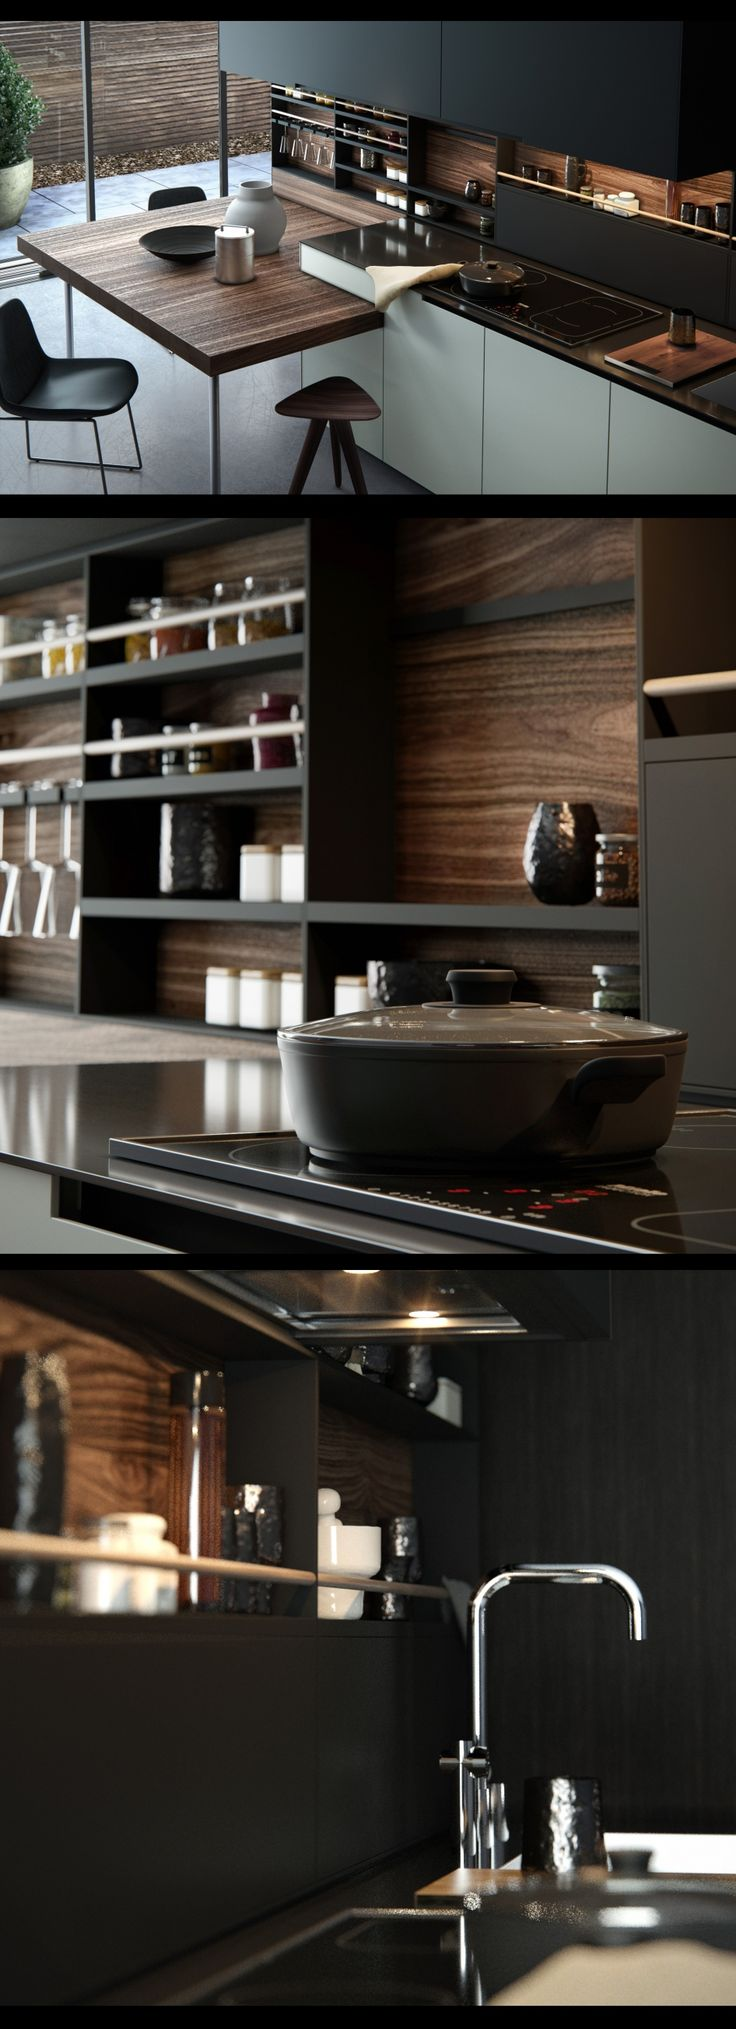 CGI_Poliform Kitchen - Галерея 3ddd.ru